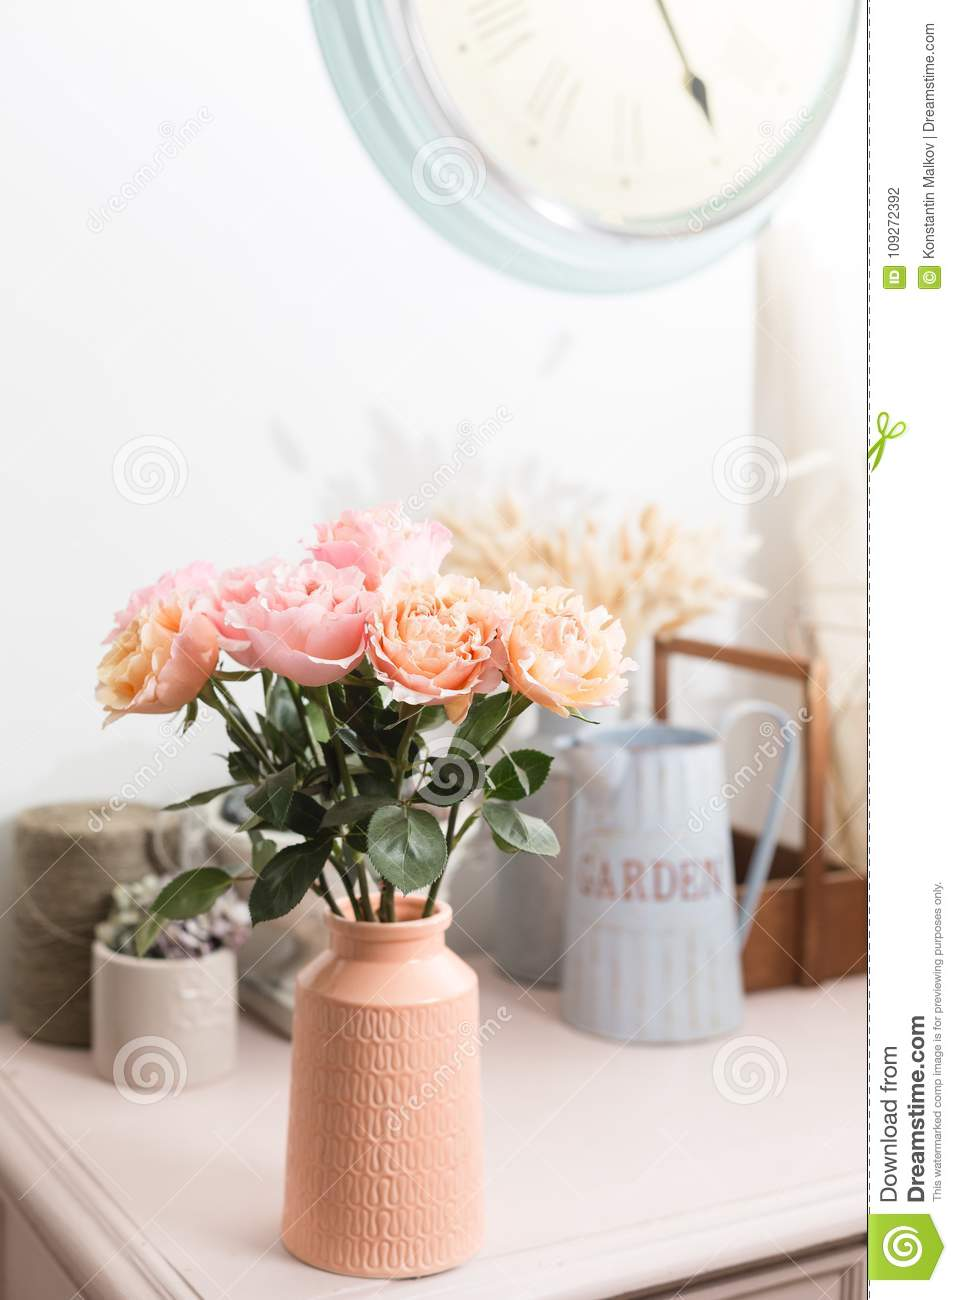 images?q=tbn:ANd9GcQh_l3eQ5xwiPy07kGEXjmjgmBKBRB7H2mRxCGhv1tFWg5c_mWT Get Inspired For Shabby Chic Home Decor @house2homegoods.net